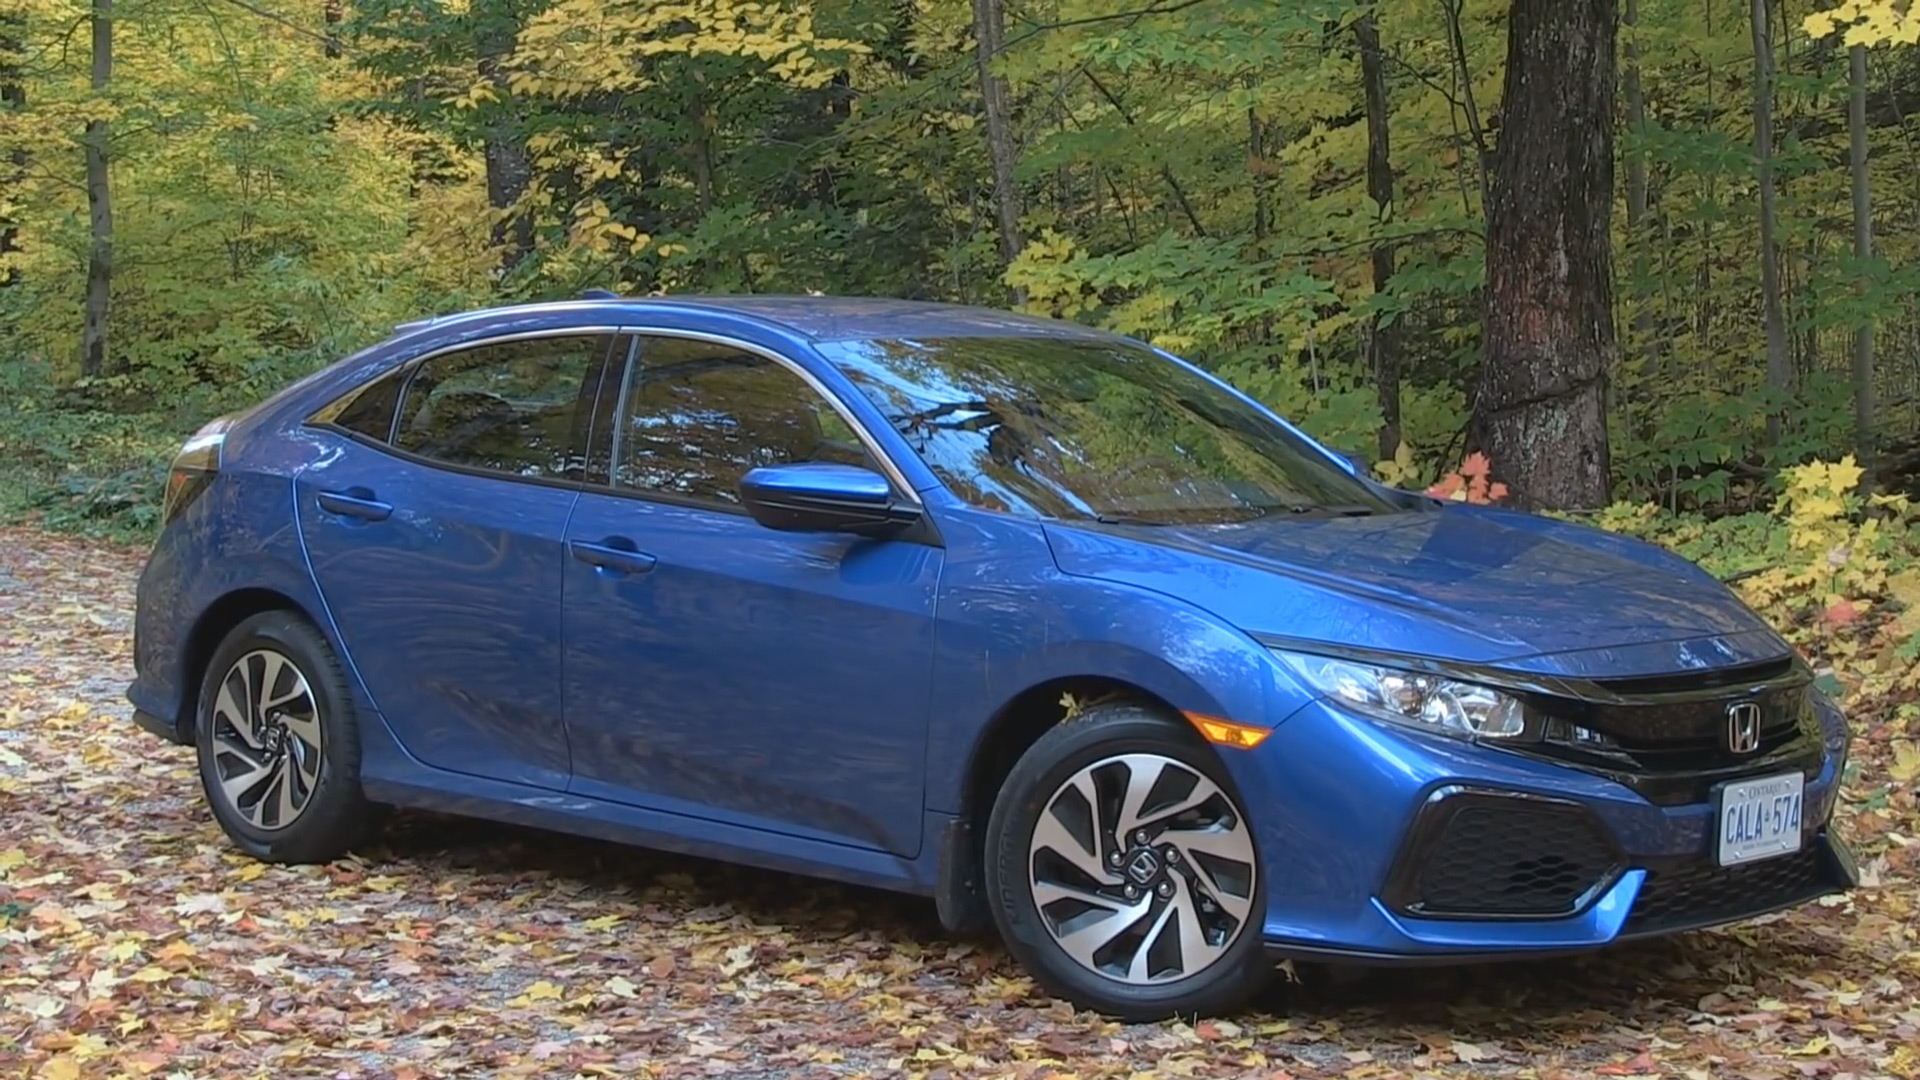 ... 2017 Honda Civic Hatchback LX, Canada  C